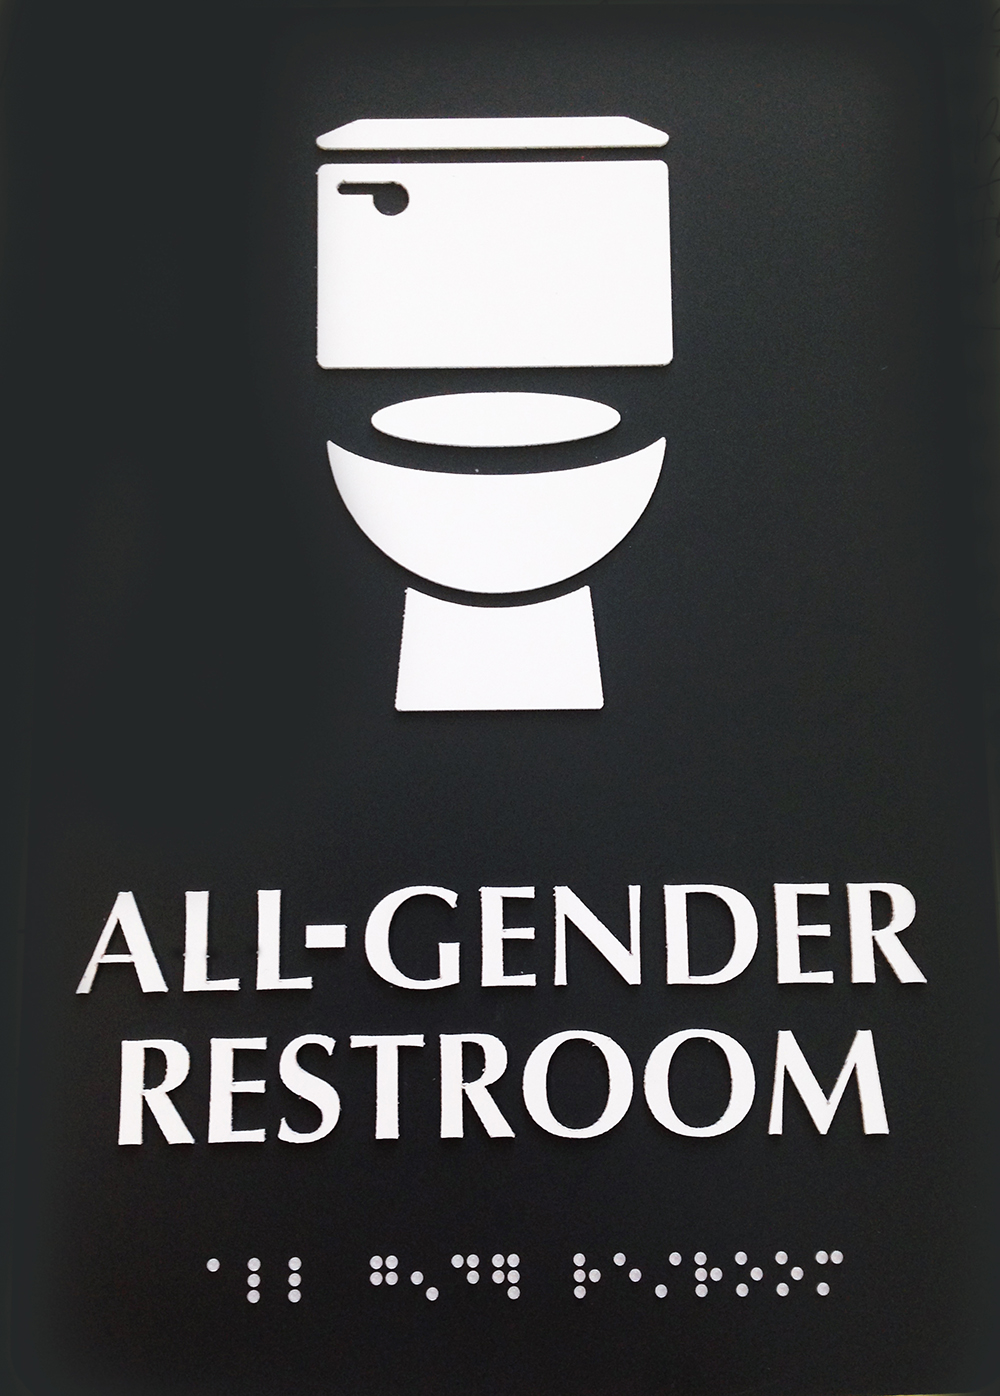 Museum lgbtq and toilet matters public history amsterdam - Transgender discrimination bathroom ...